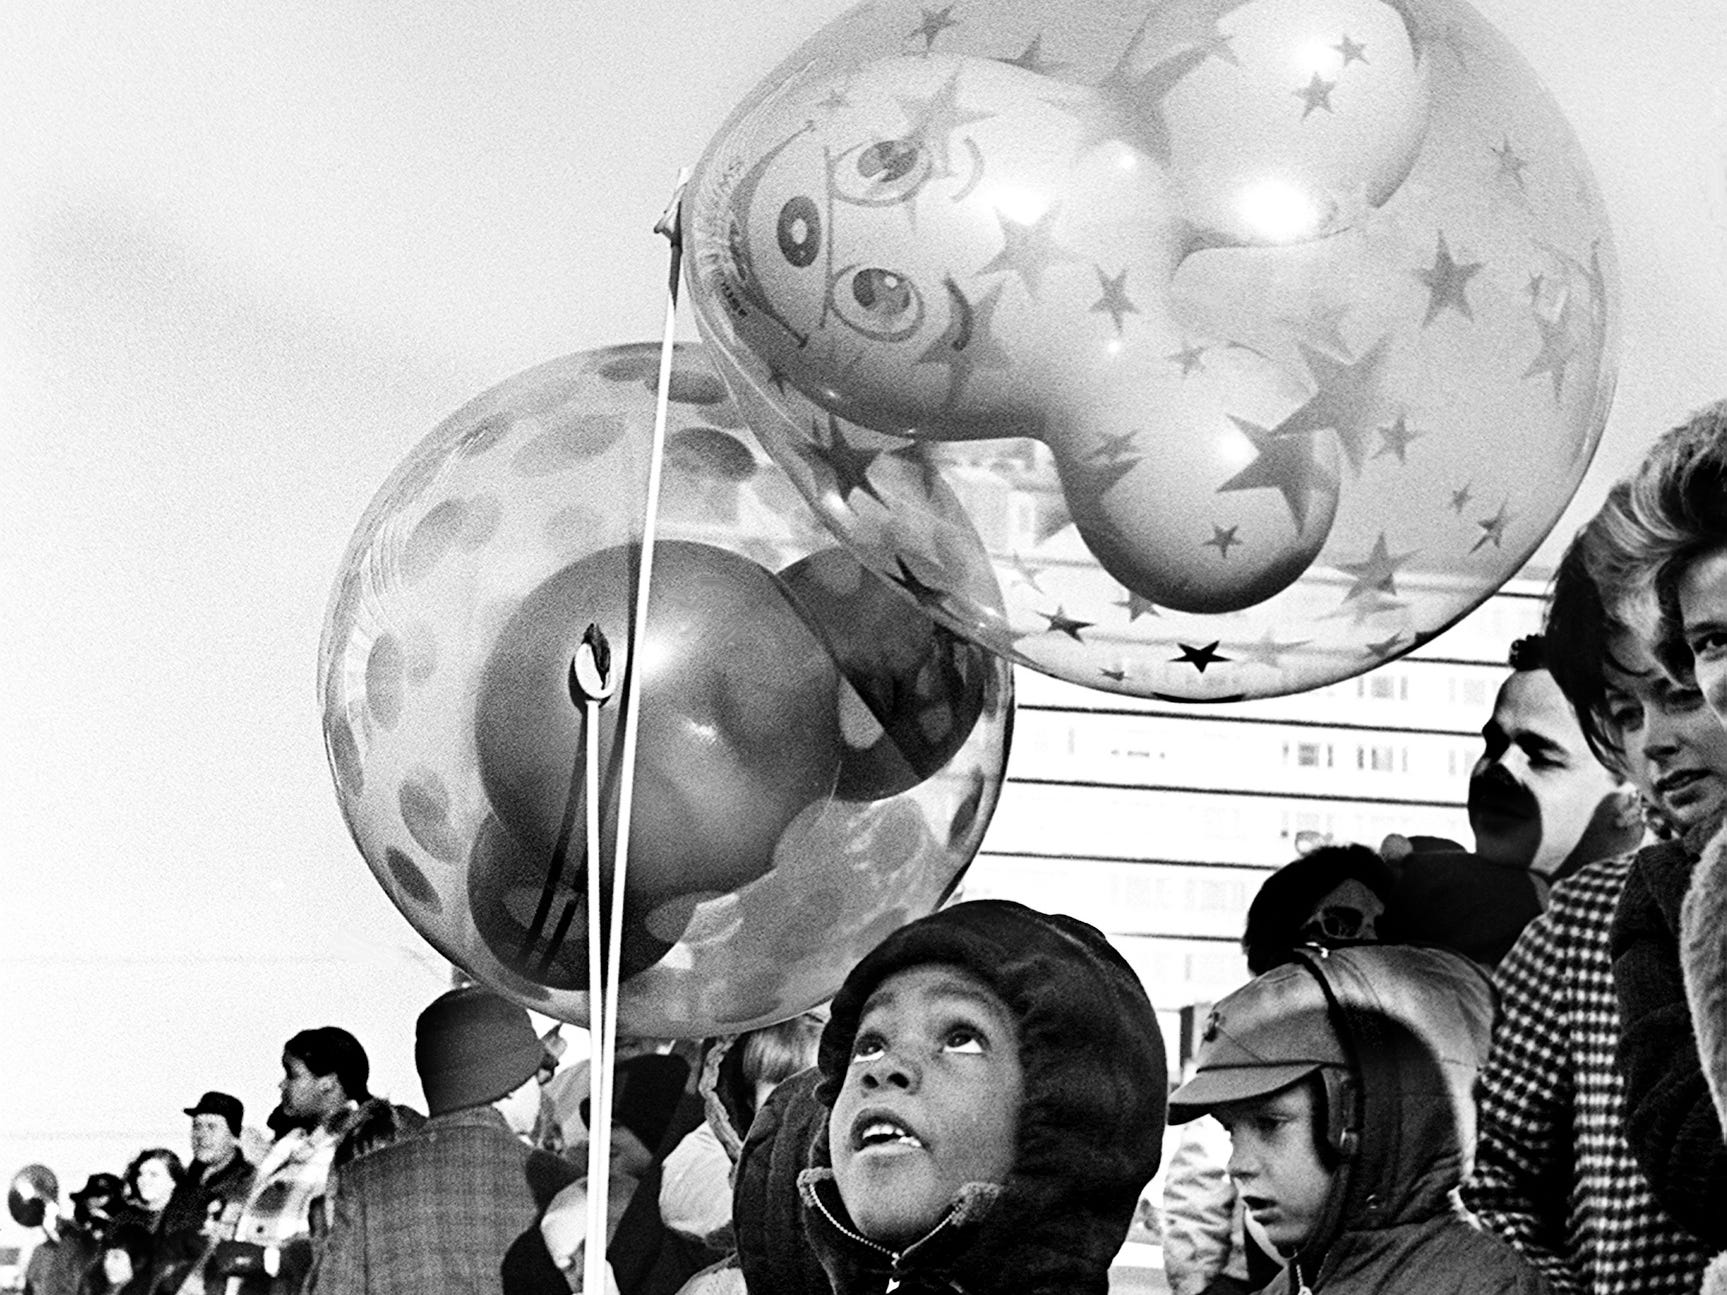 Kevin Rankin, 5, son of Mr. and Mrs. Billie Rankin, watches the chill wind whip his balloons during the 16th annual Nashville Christmas Parade on Dec. 8, 1968.